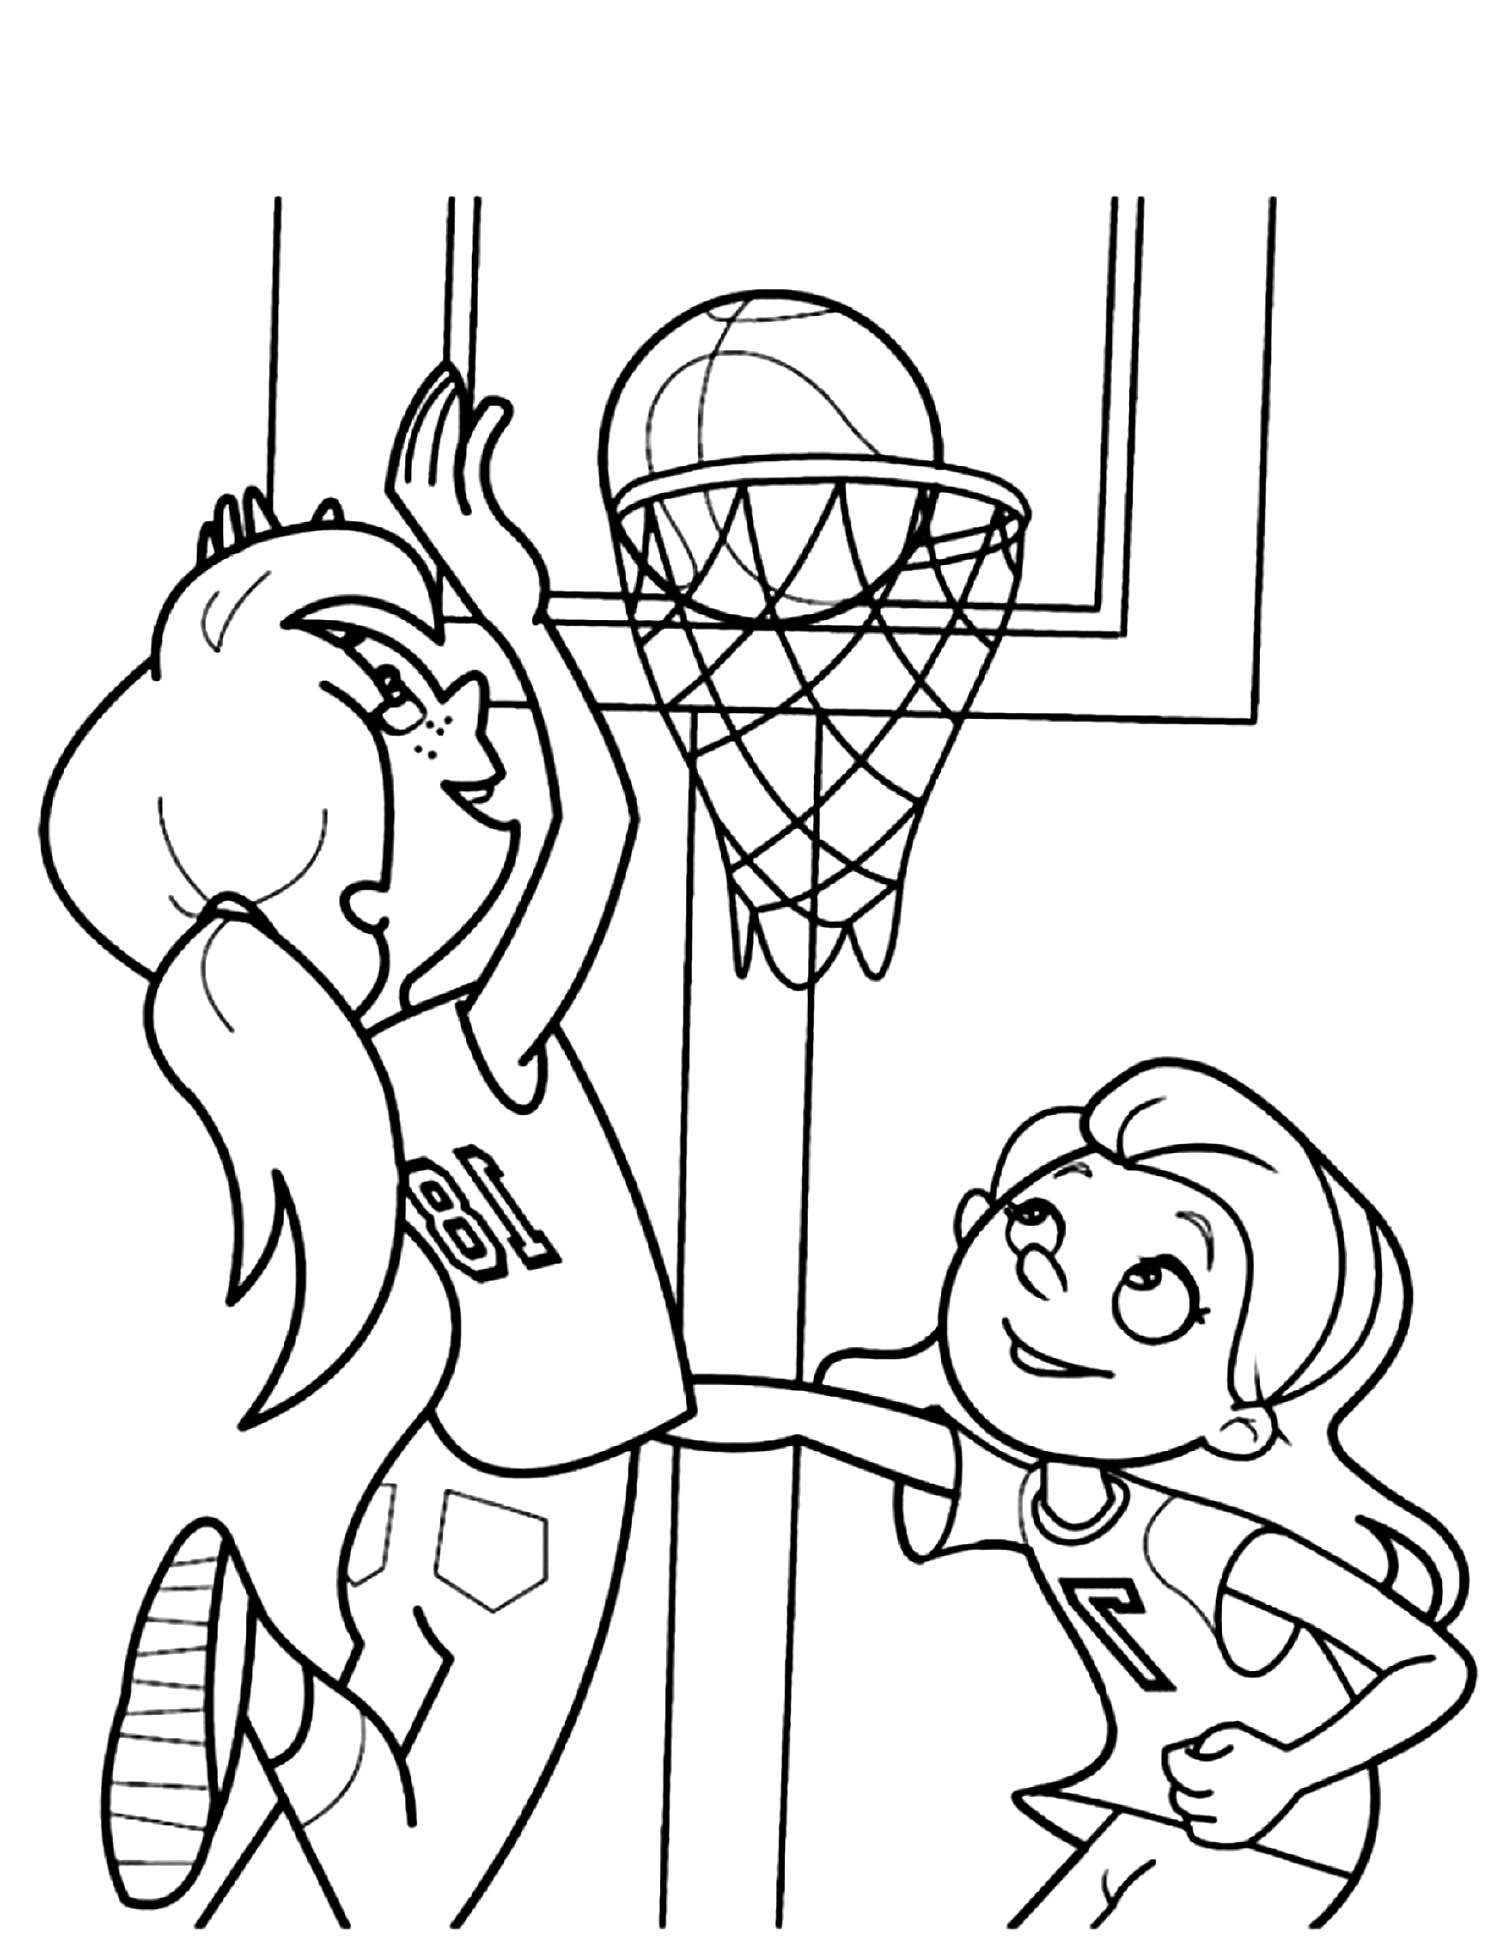 Girls Playing Basketball Coloring Page